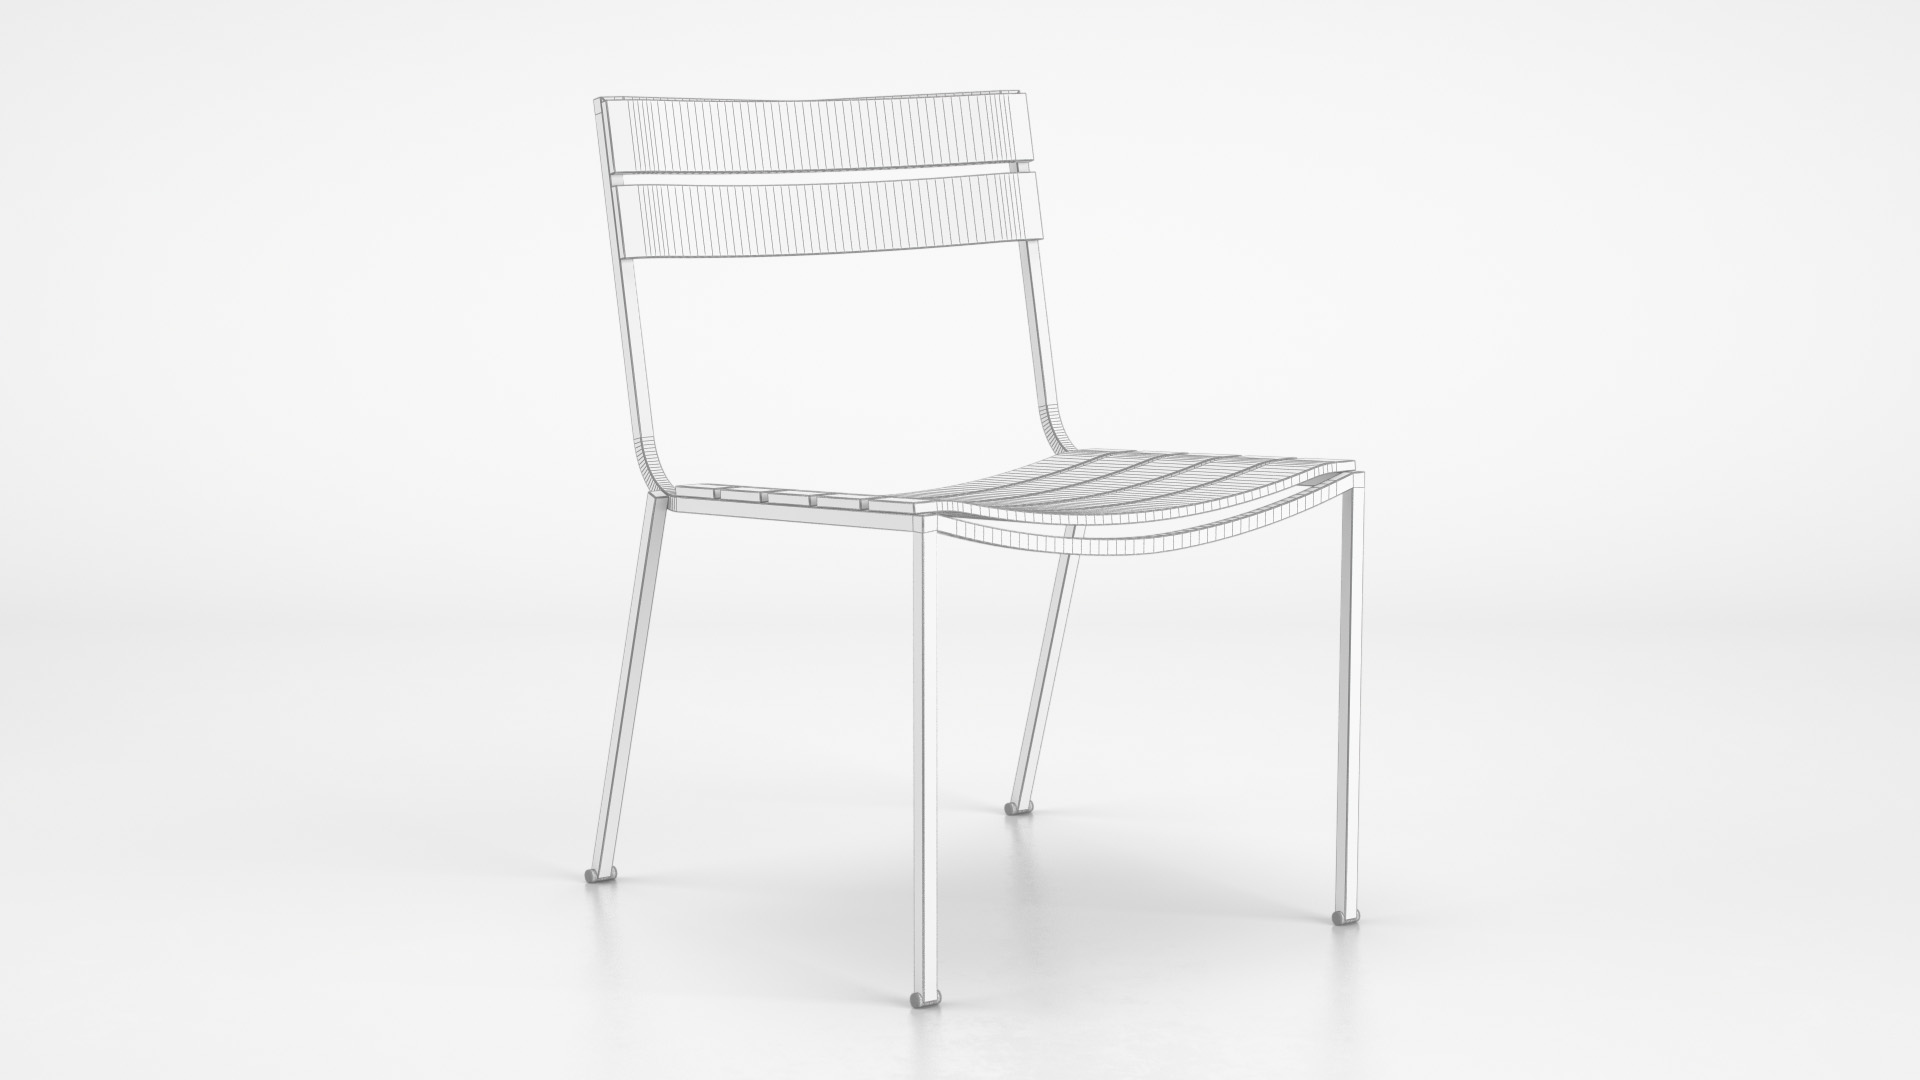 Coro_StackingChair_S05_WhiteSet_01_wire_0000